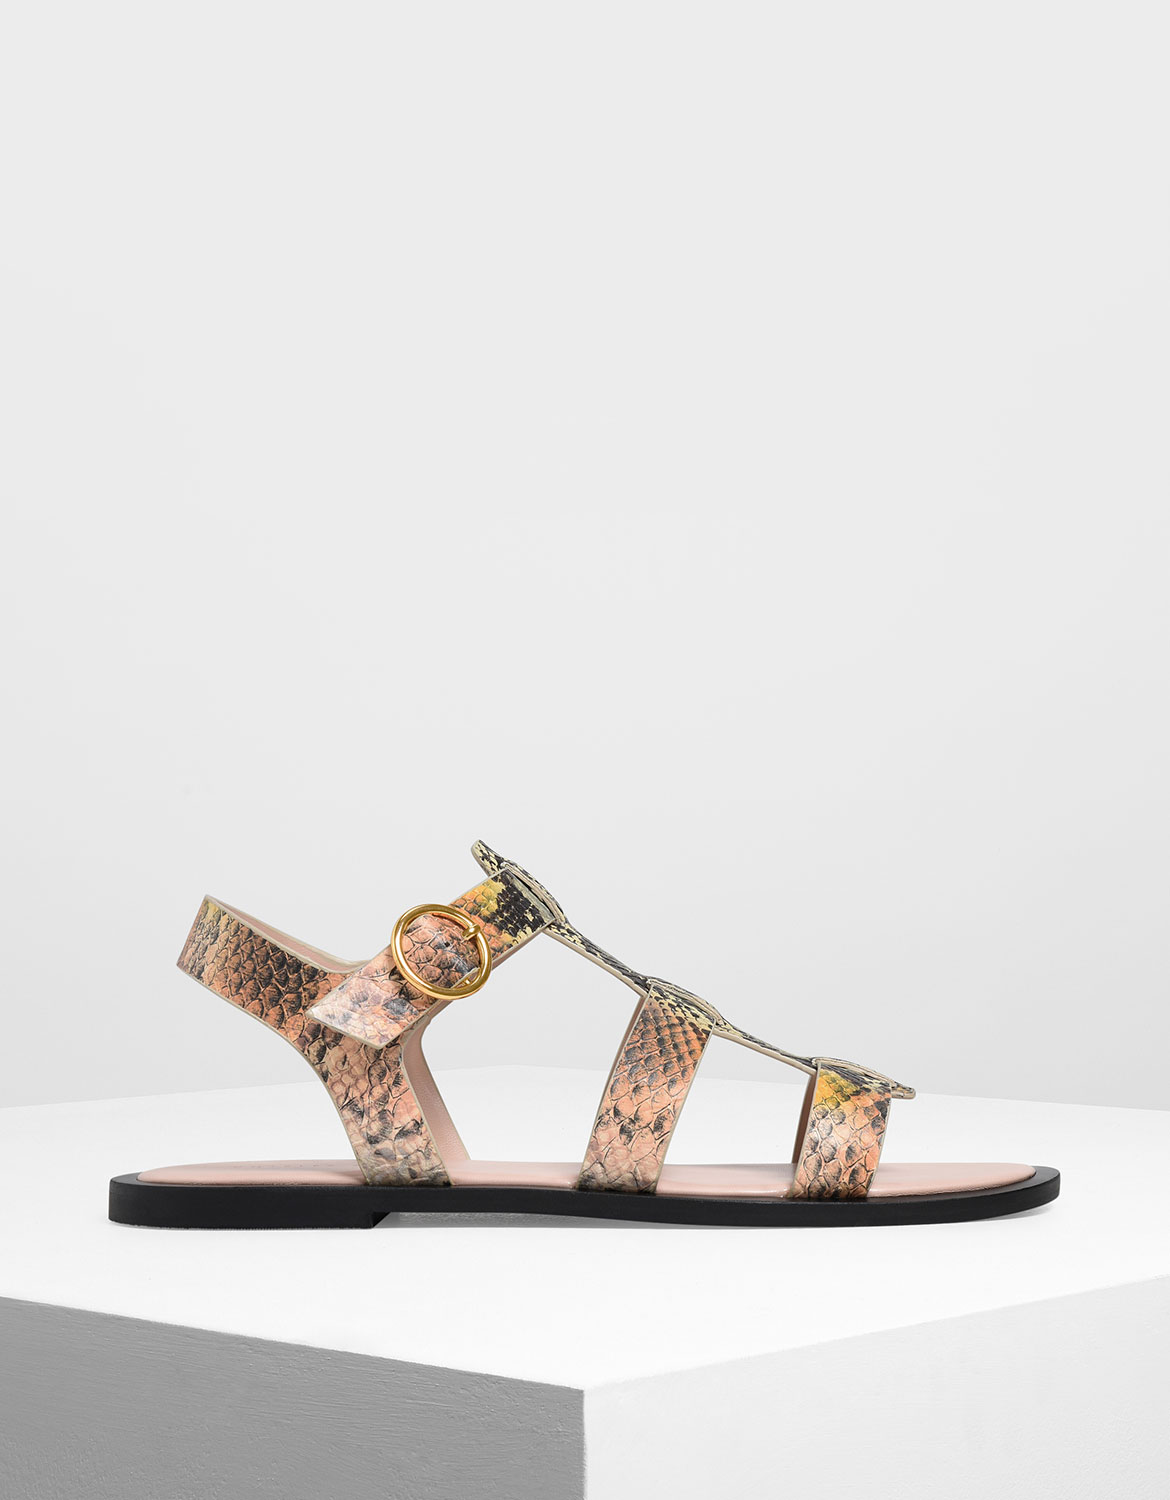 Charles & Keith Snake Print Strappy Sandals